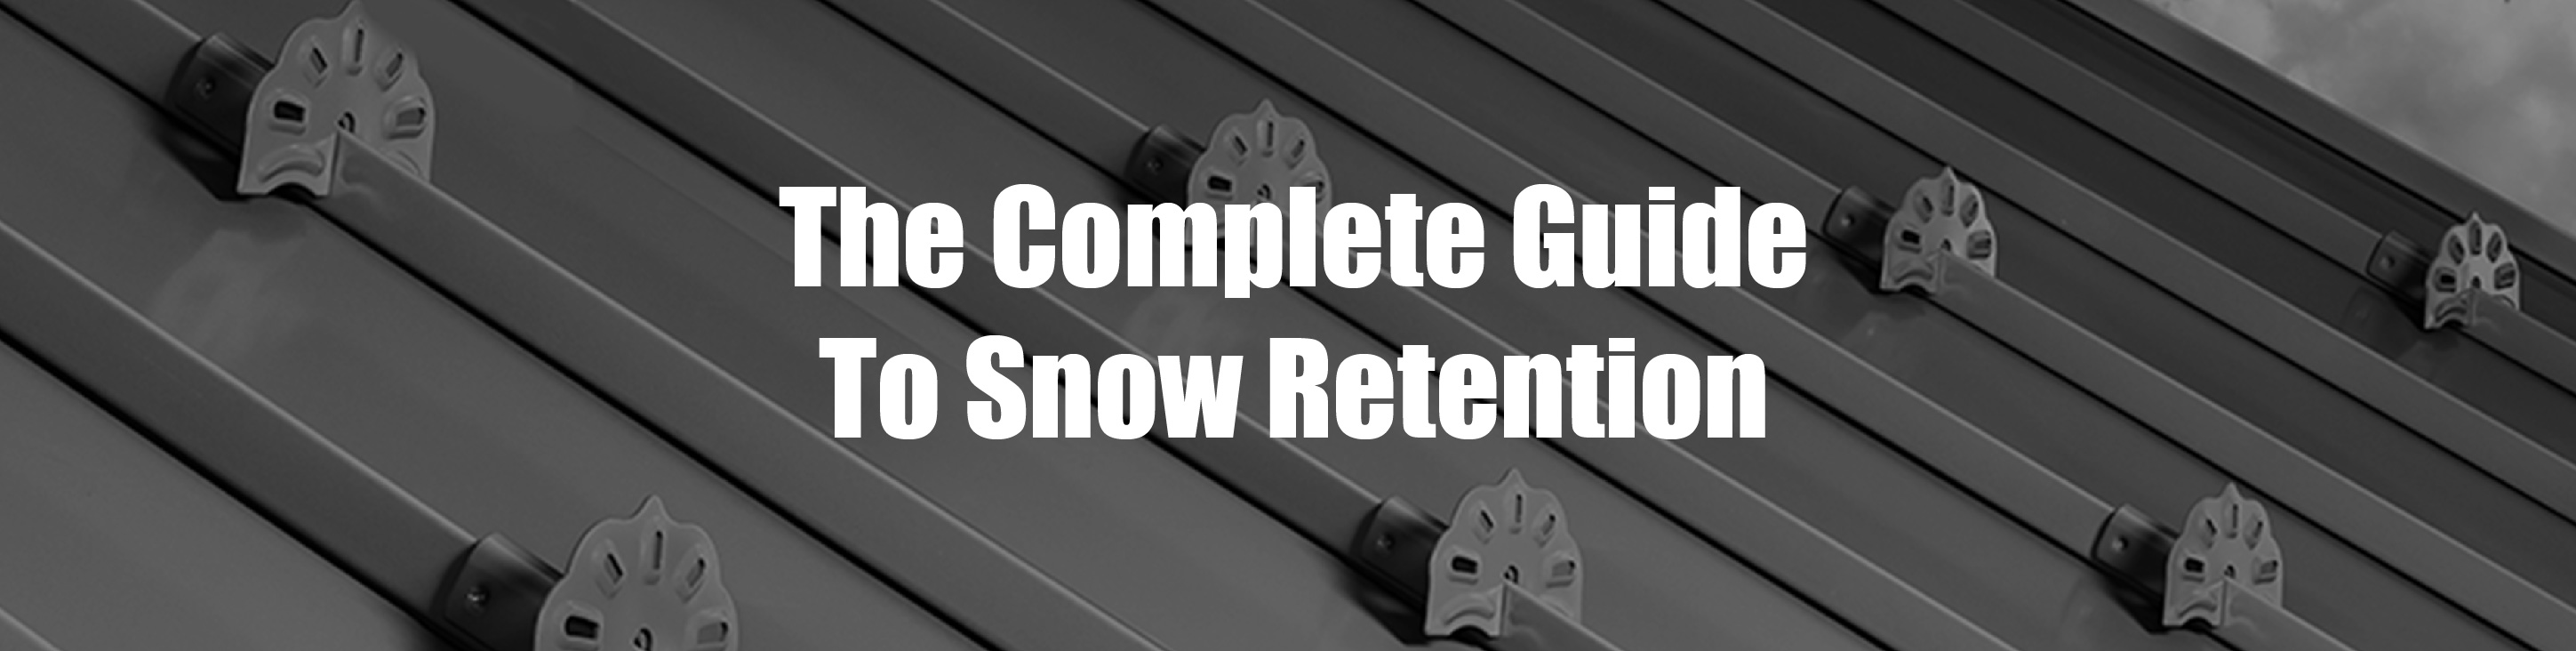 Complete guide to snow retention header image-01